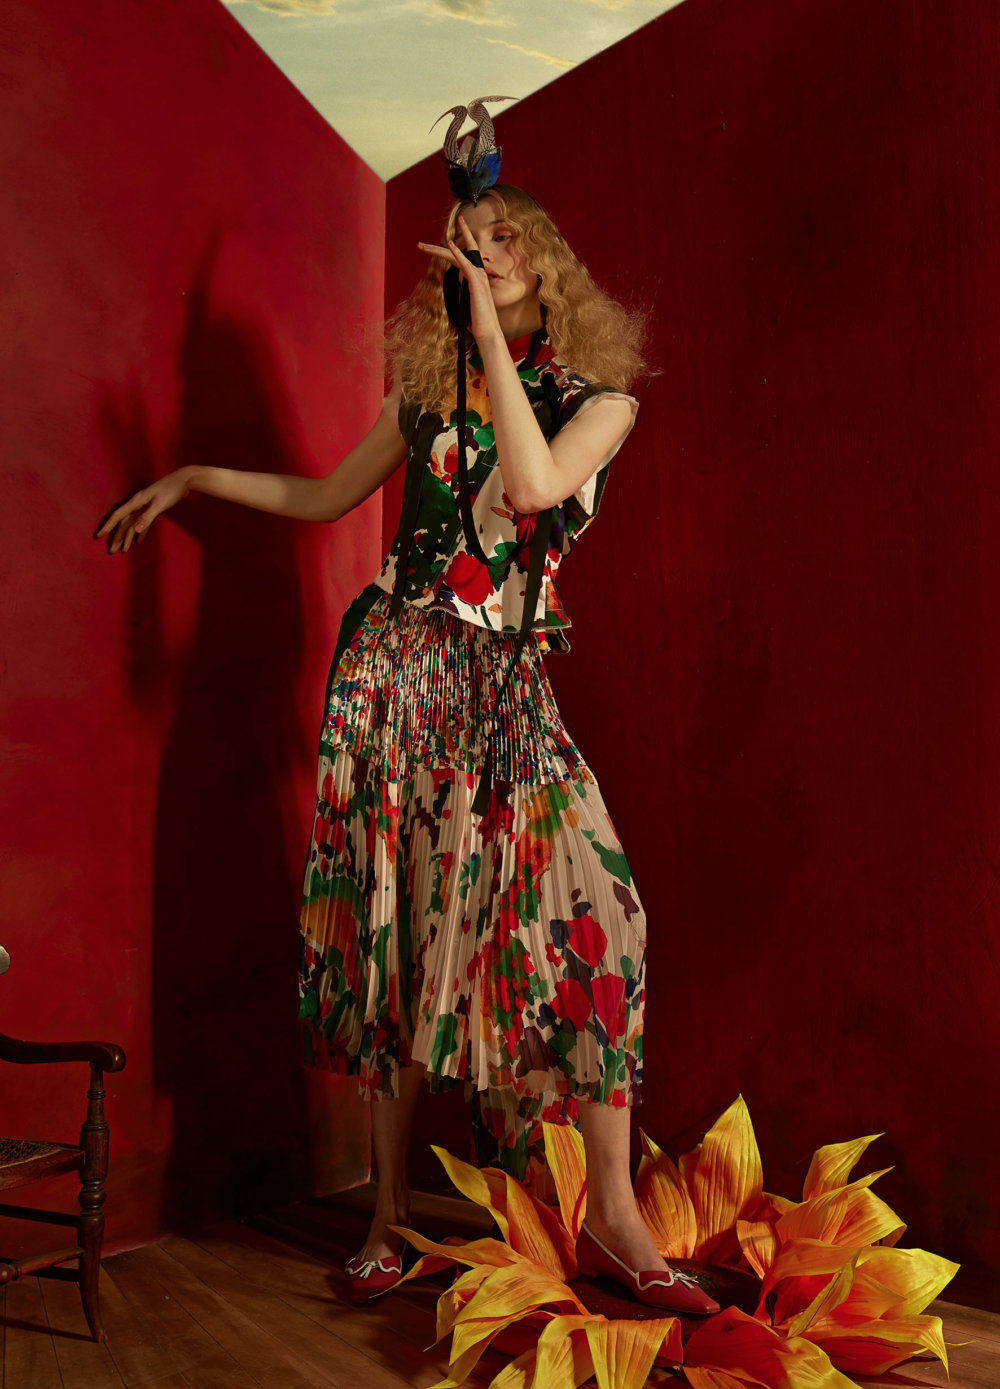 Dorothea Tanning A Fashion And Beauty Photograph Series By Sandrine And Michael 9